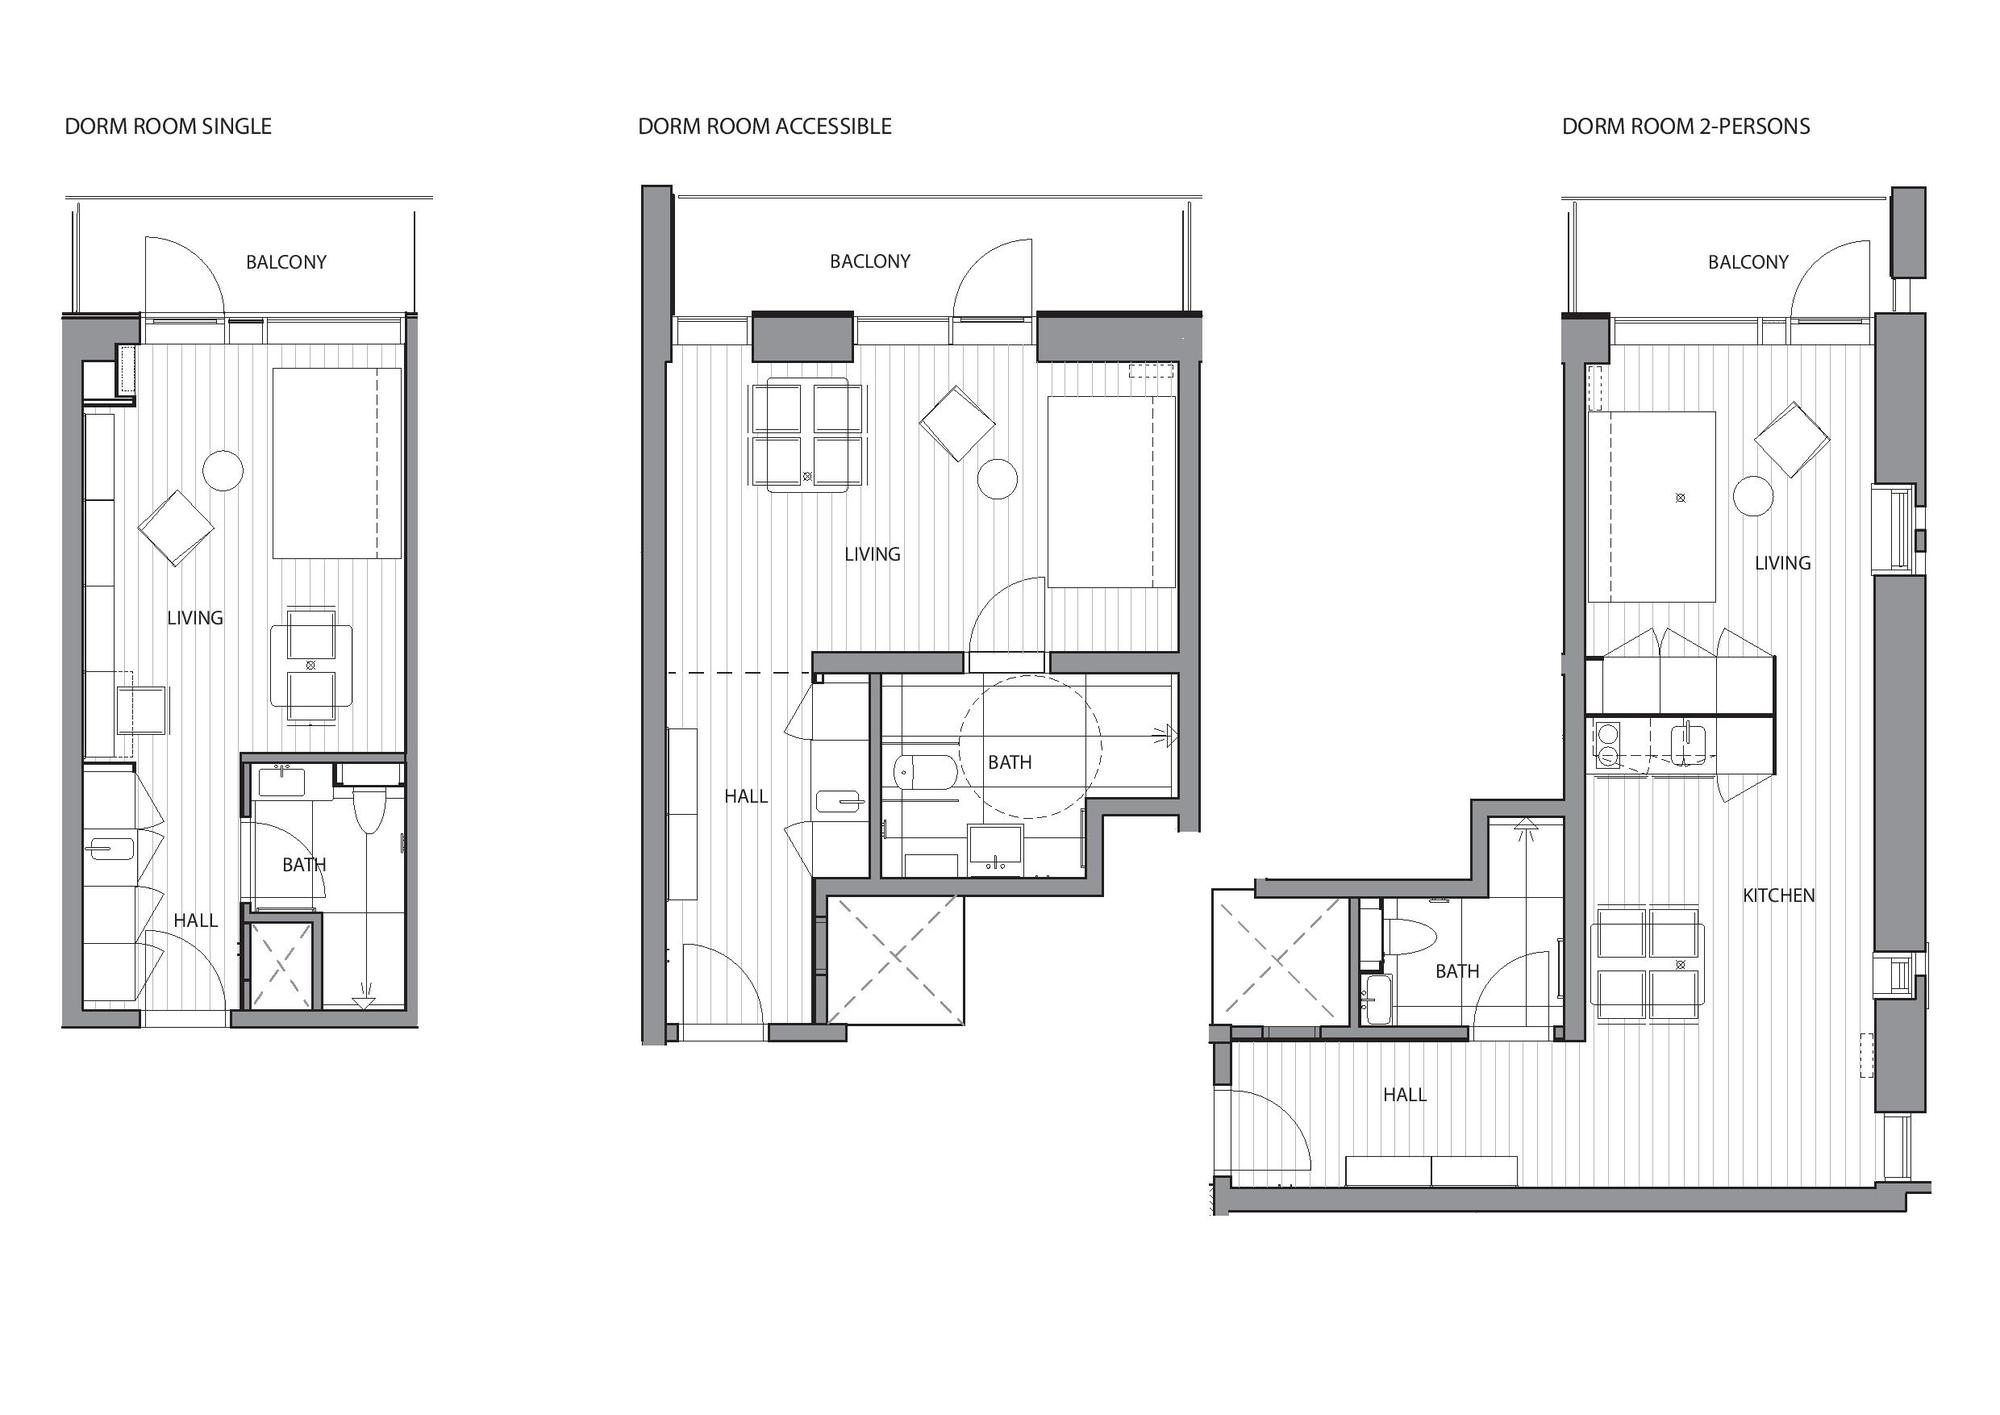 Hong Kong Apartment Floor Plan Gallery Of Student Housing C F M 248 Ller 51